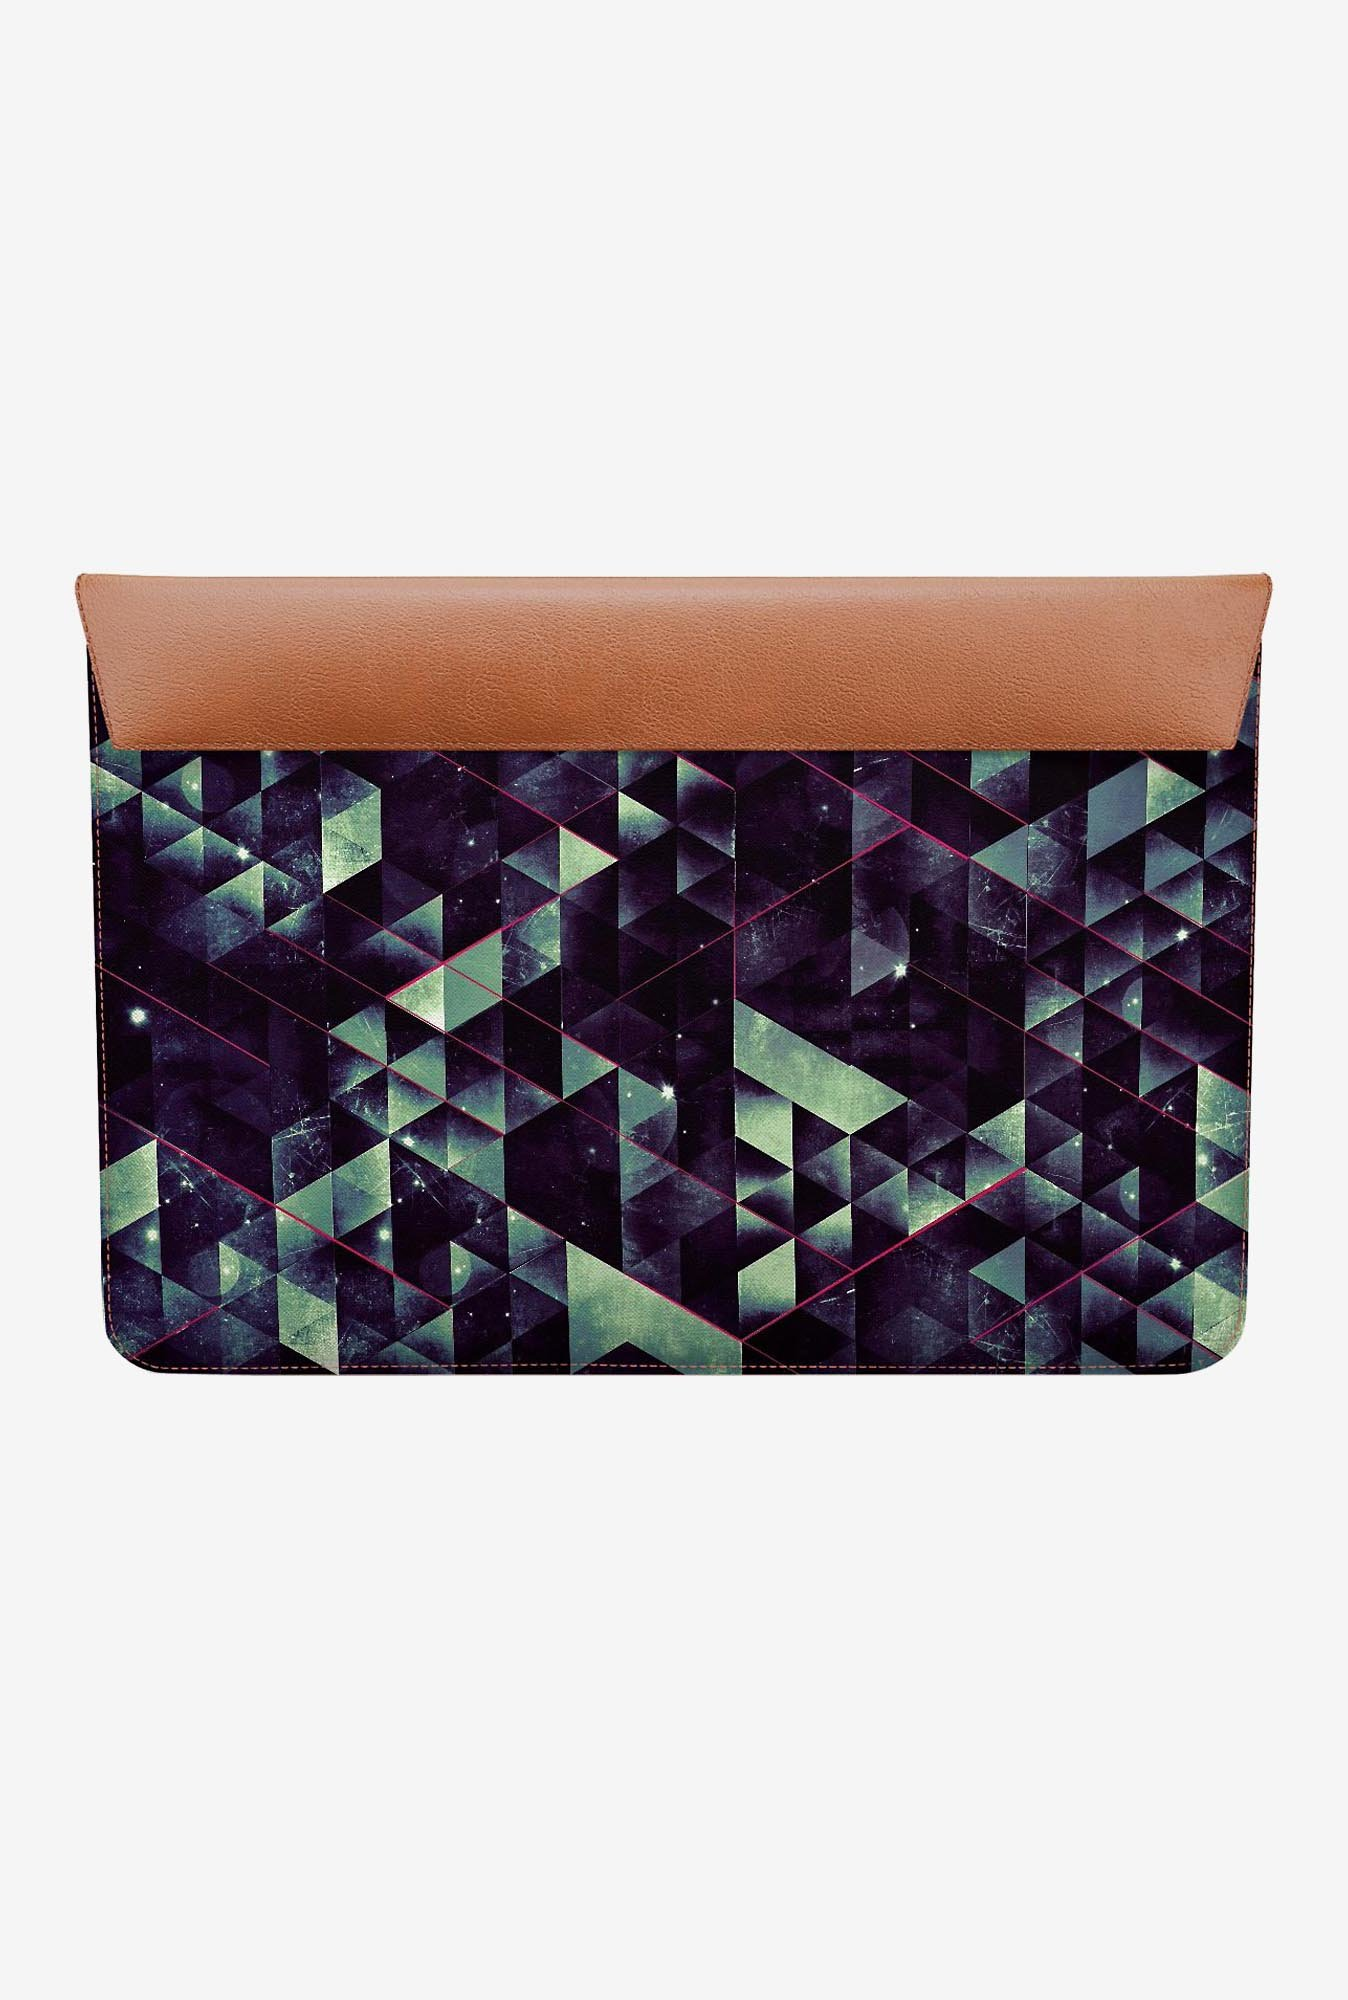 "DailyObjects Lyne Styrshyp Macbook Pro 13"" Envelope Sleeve"